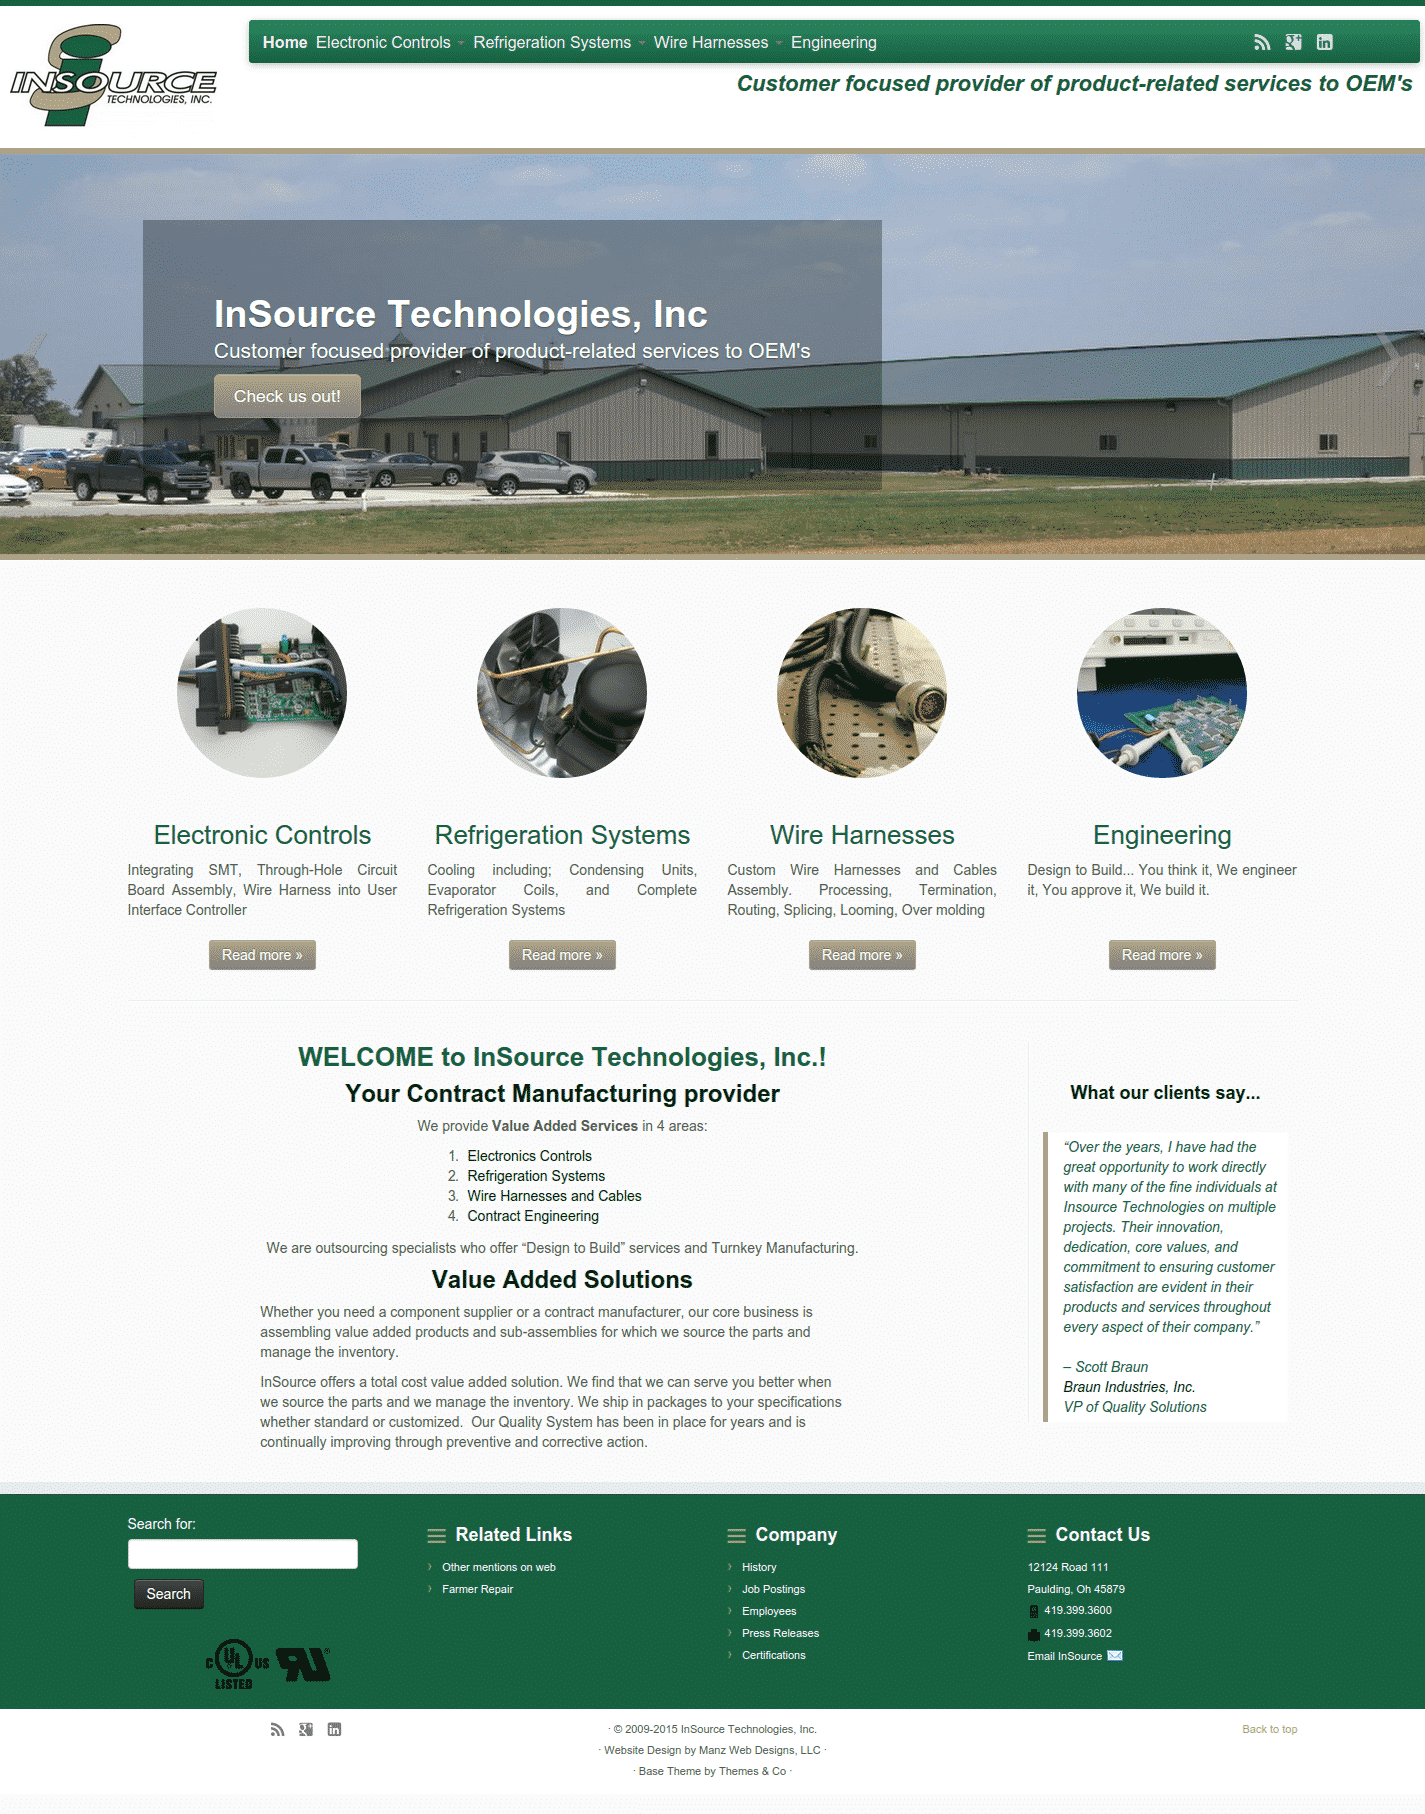 insource technologies inc website image